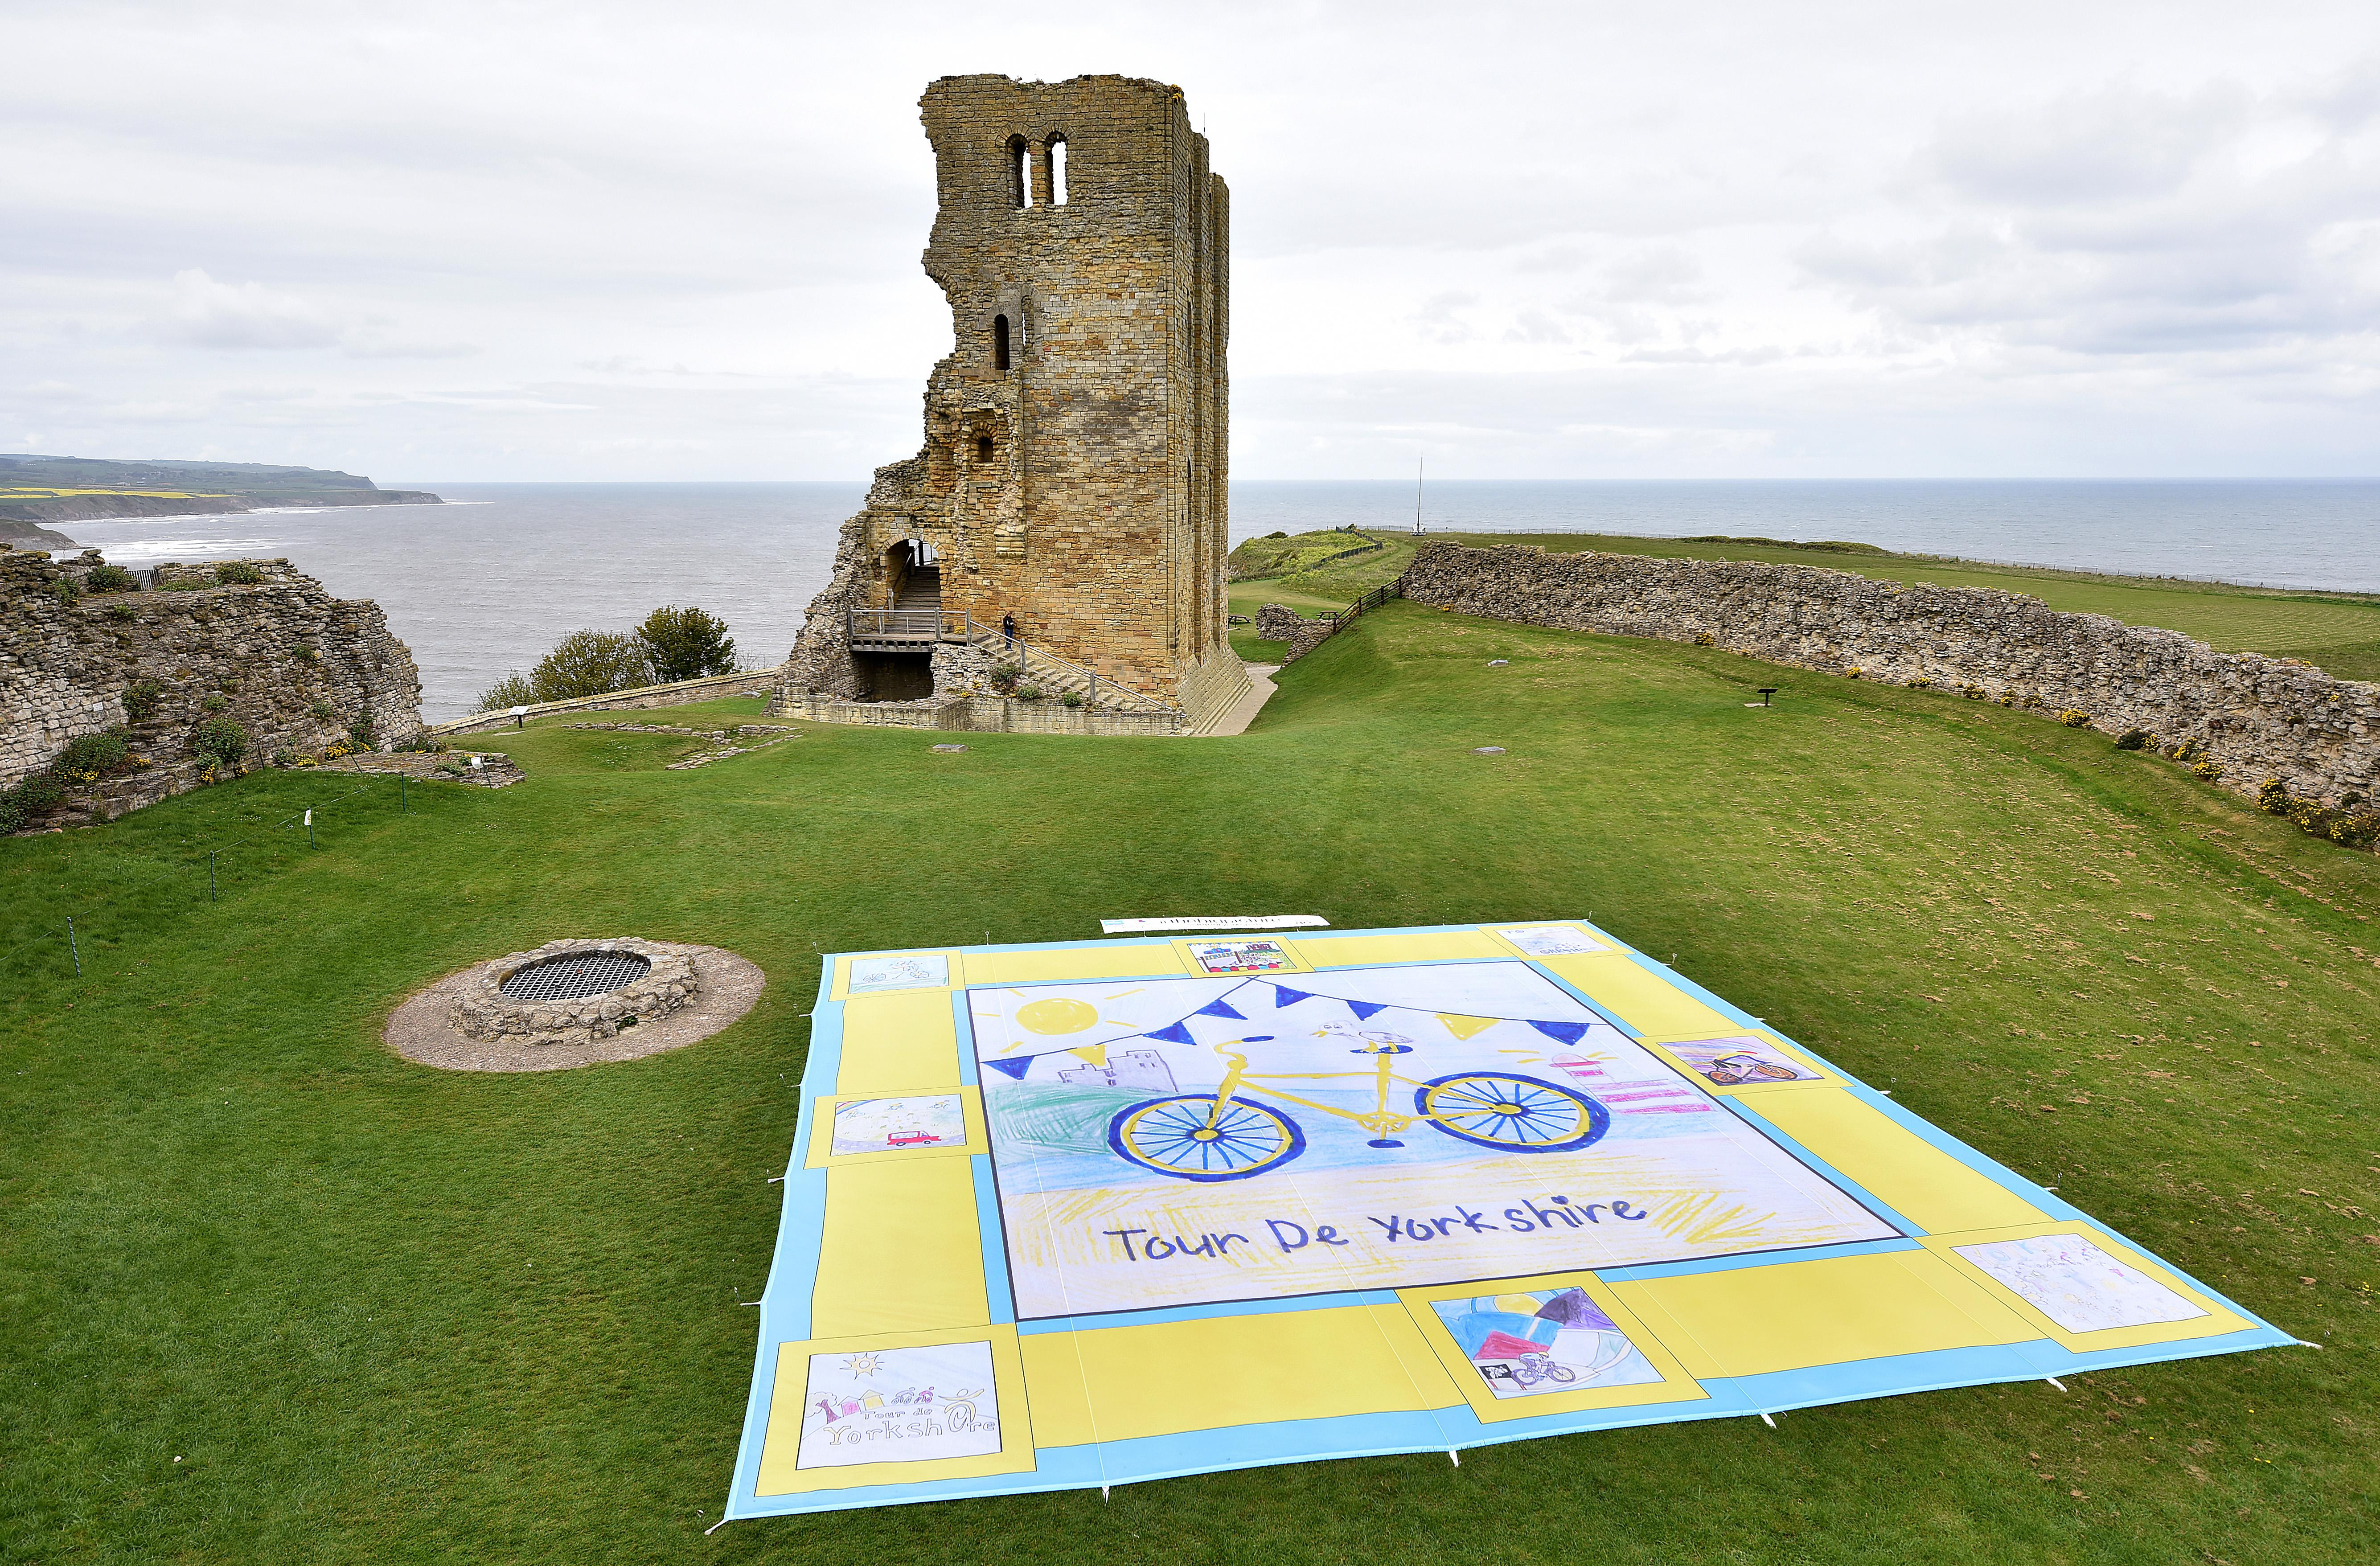 Image of The Big Picture land art in the grounds of Scarborough Castle